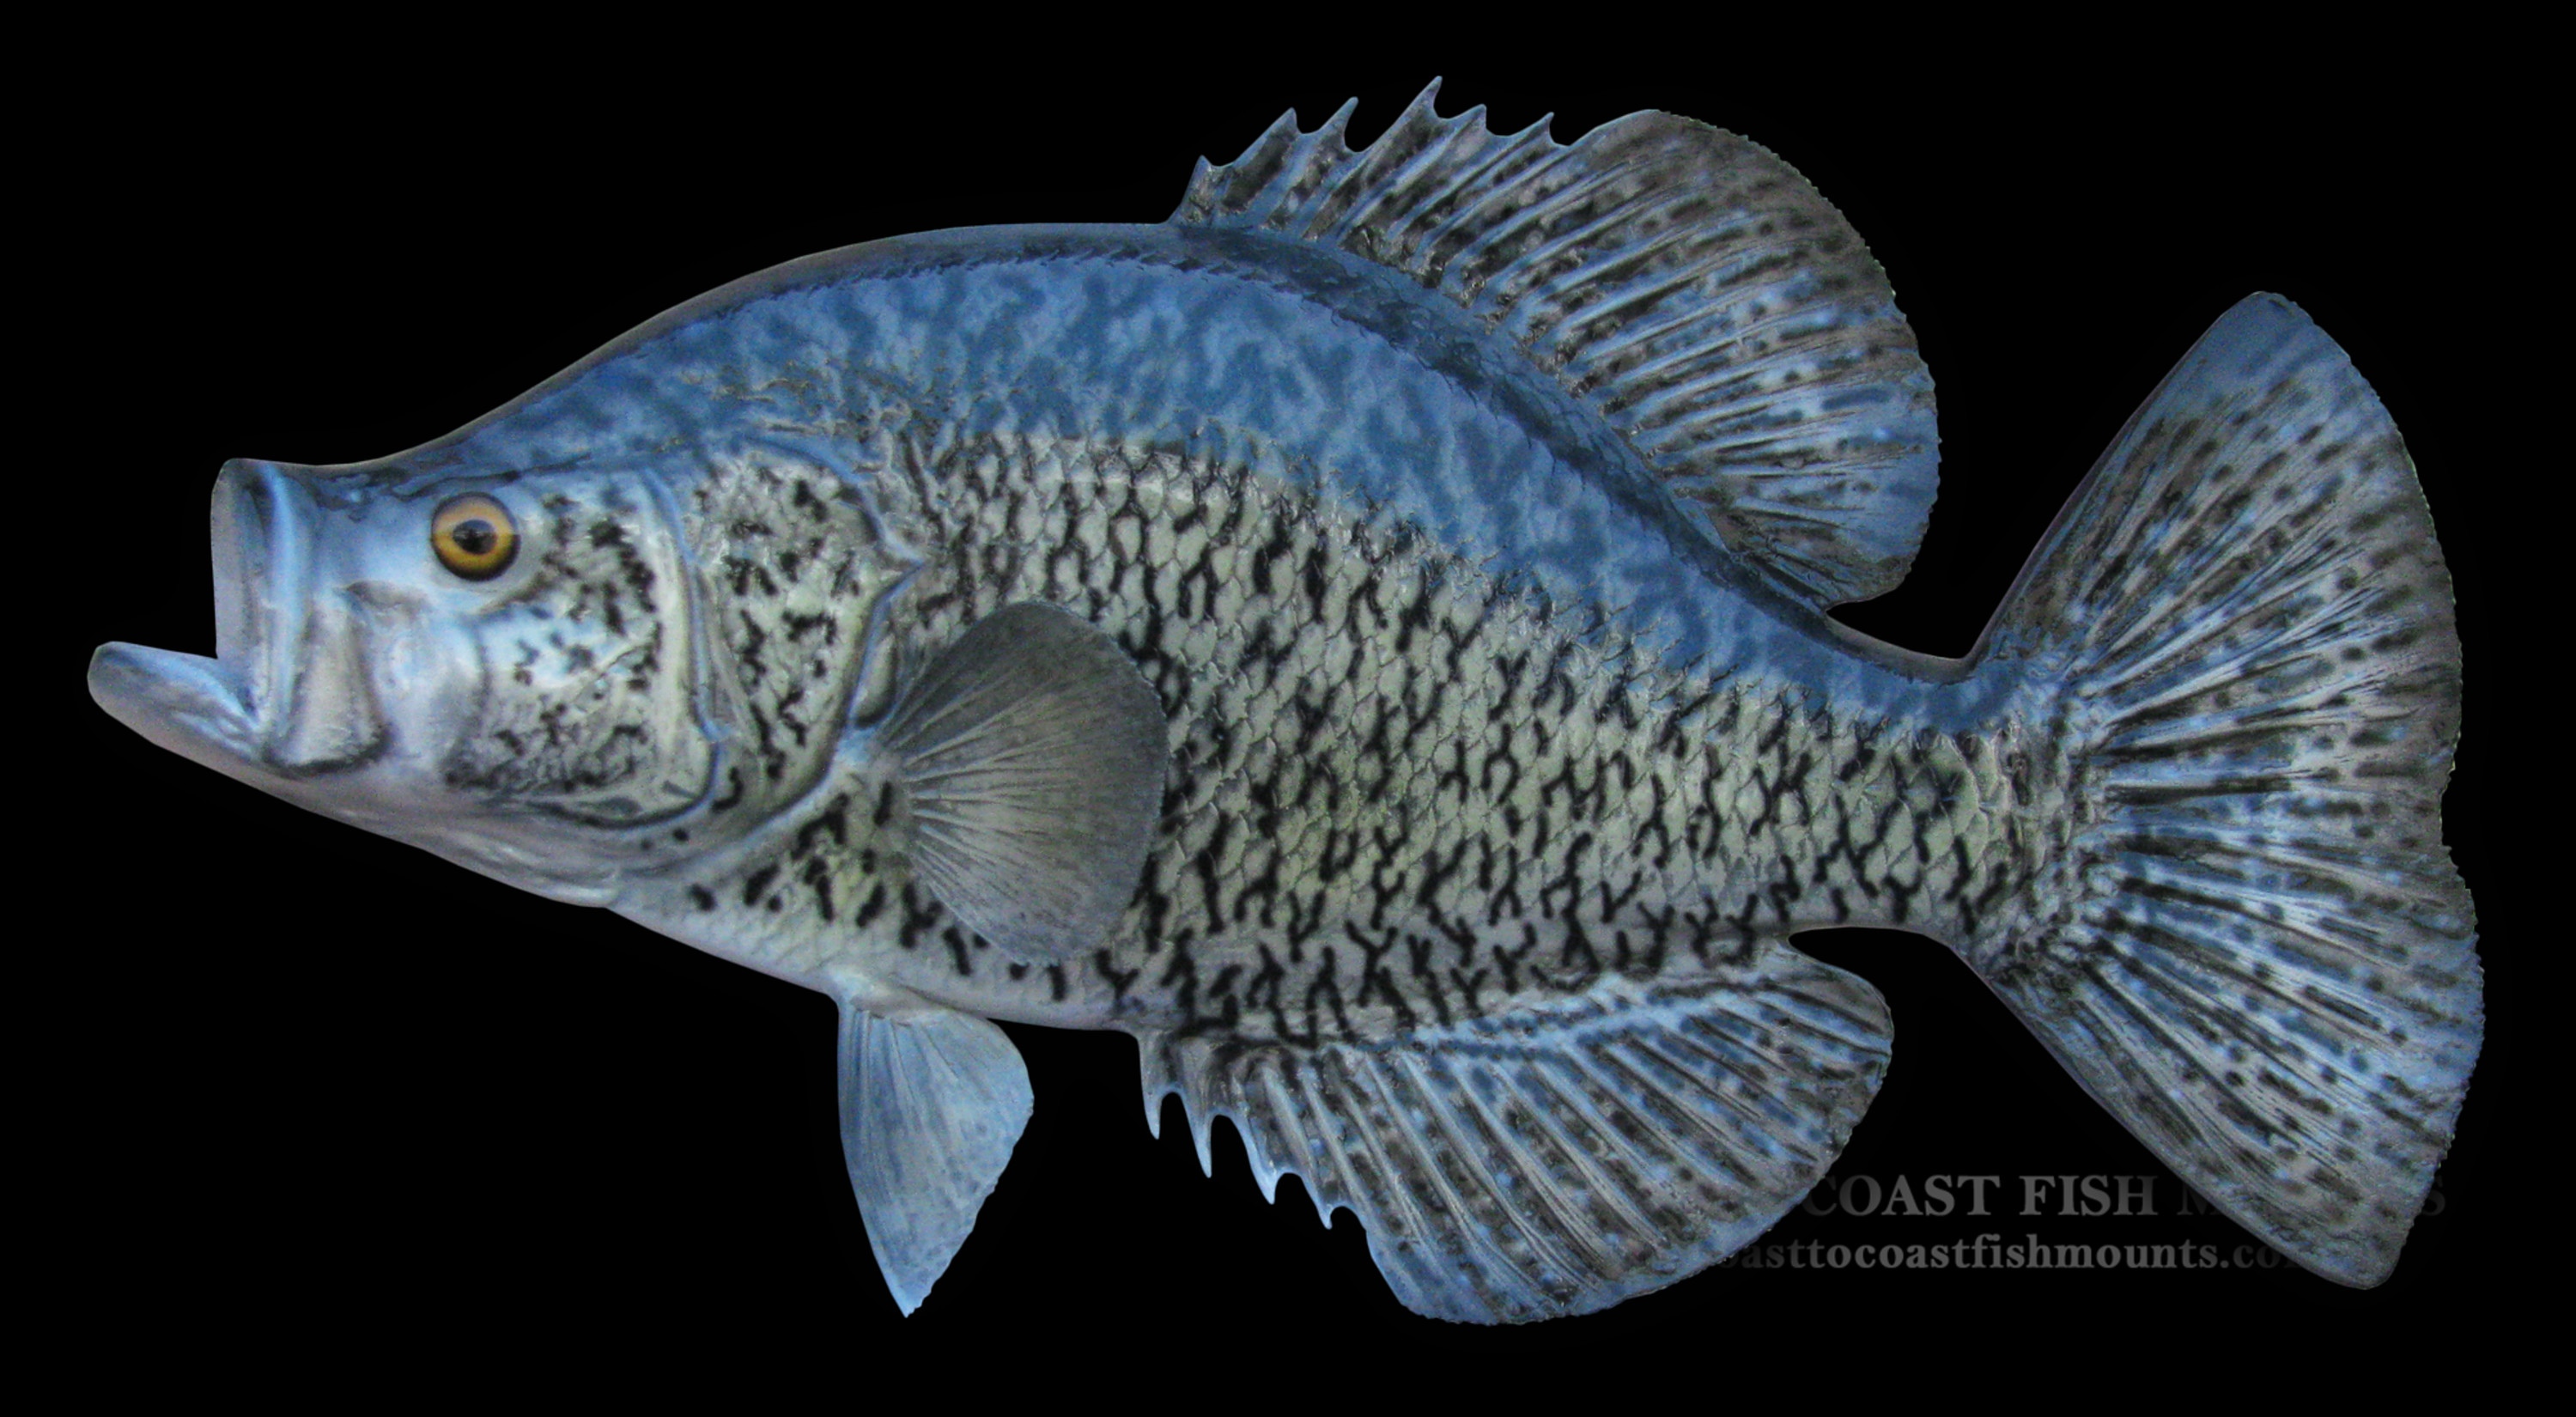 Calico bass crappie fish mount and fish replicas coast for What is a crappie fish